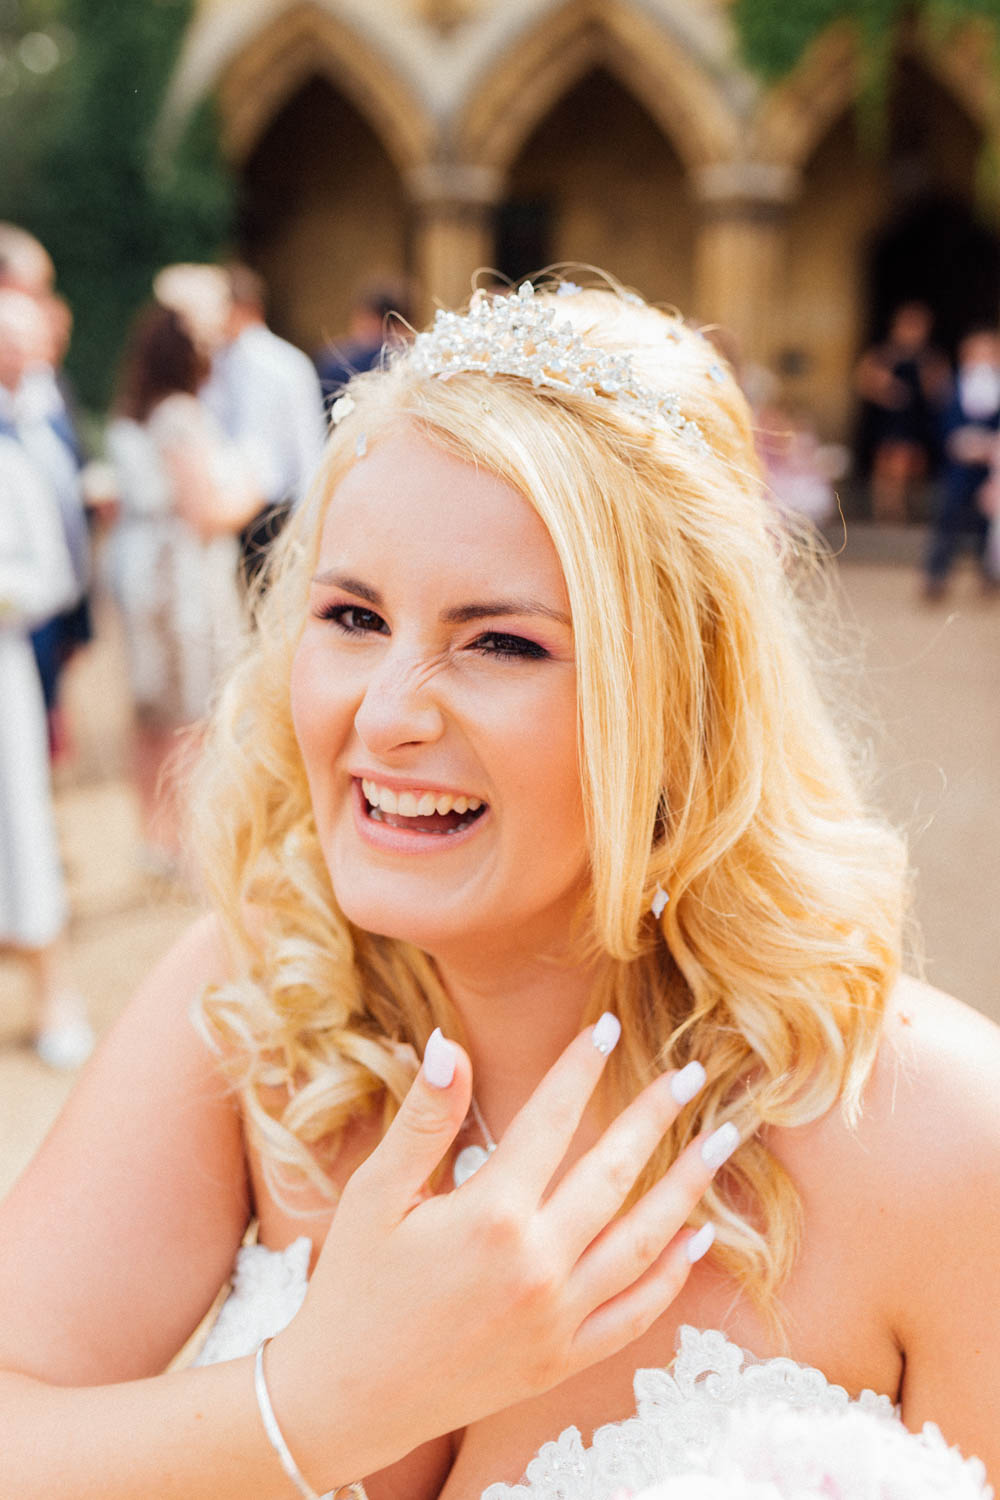 Special-Day-Photography-Manor-By-The-Lake-Cheltenham-Cheltenham-Manor-Wedding-the-bride-enjoying-her-wedding.jpg